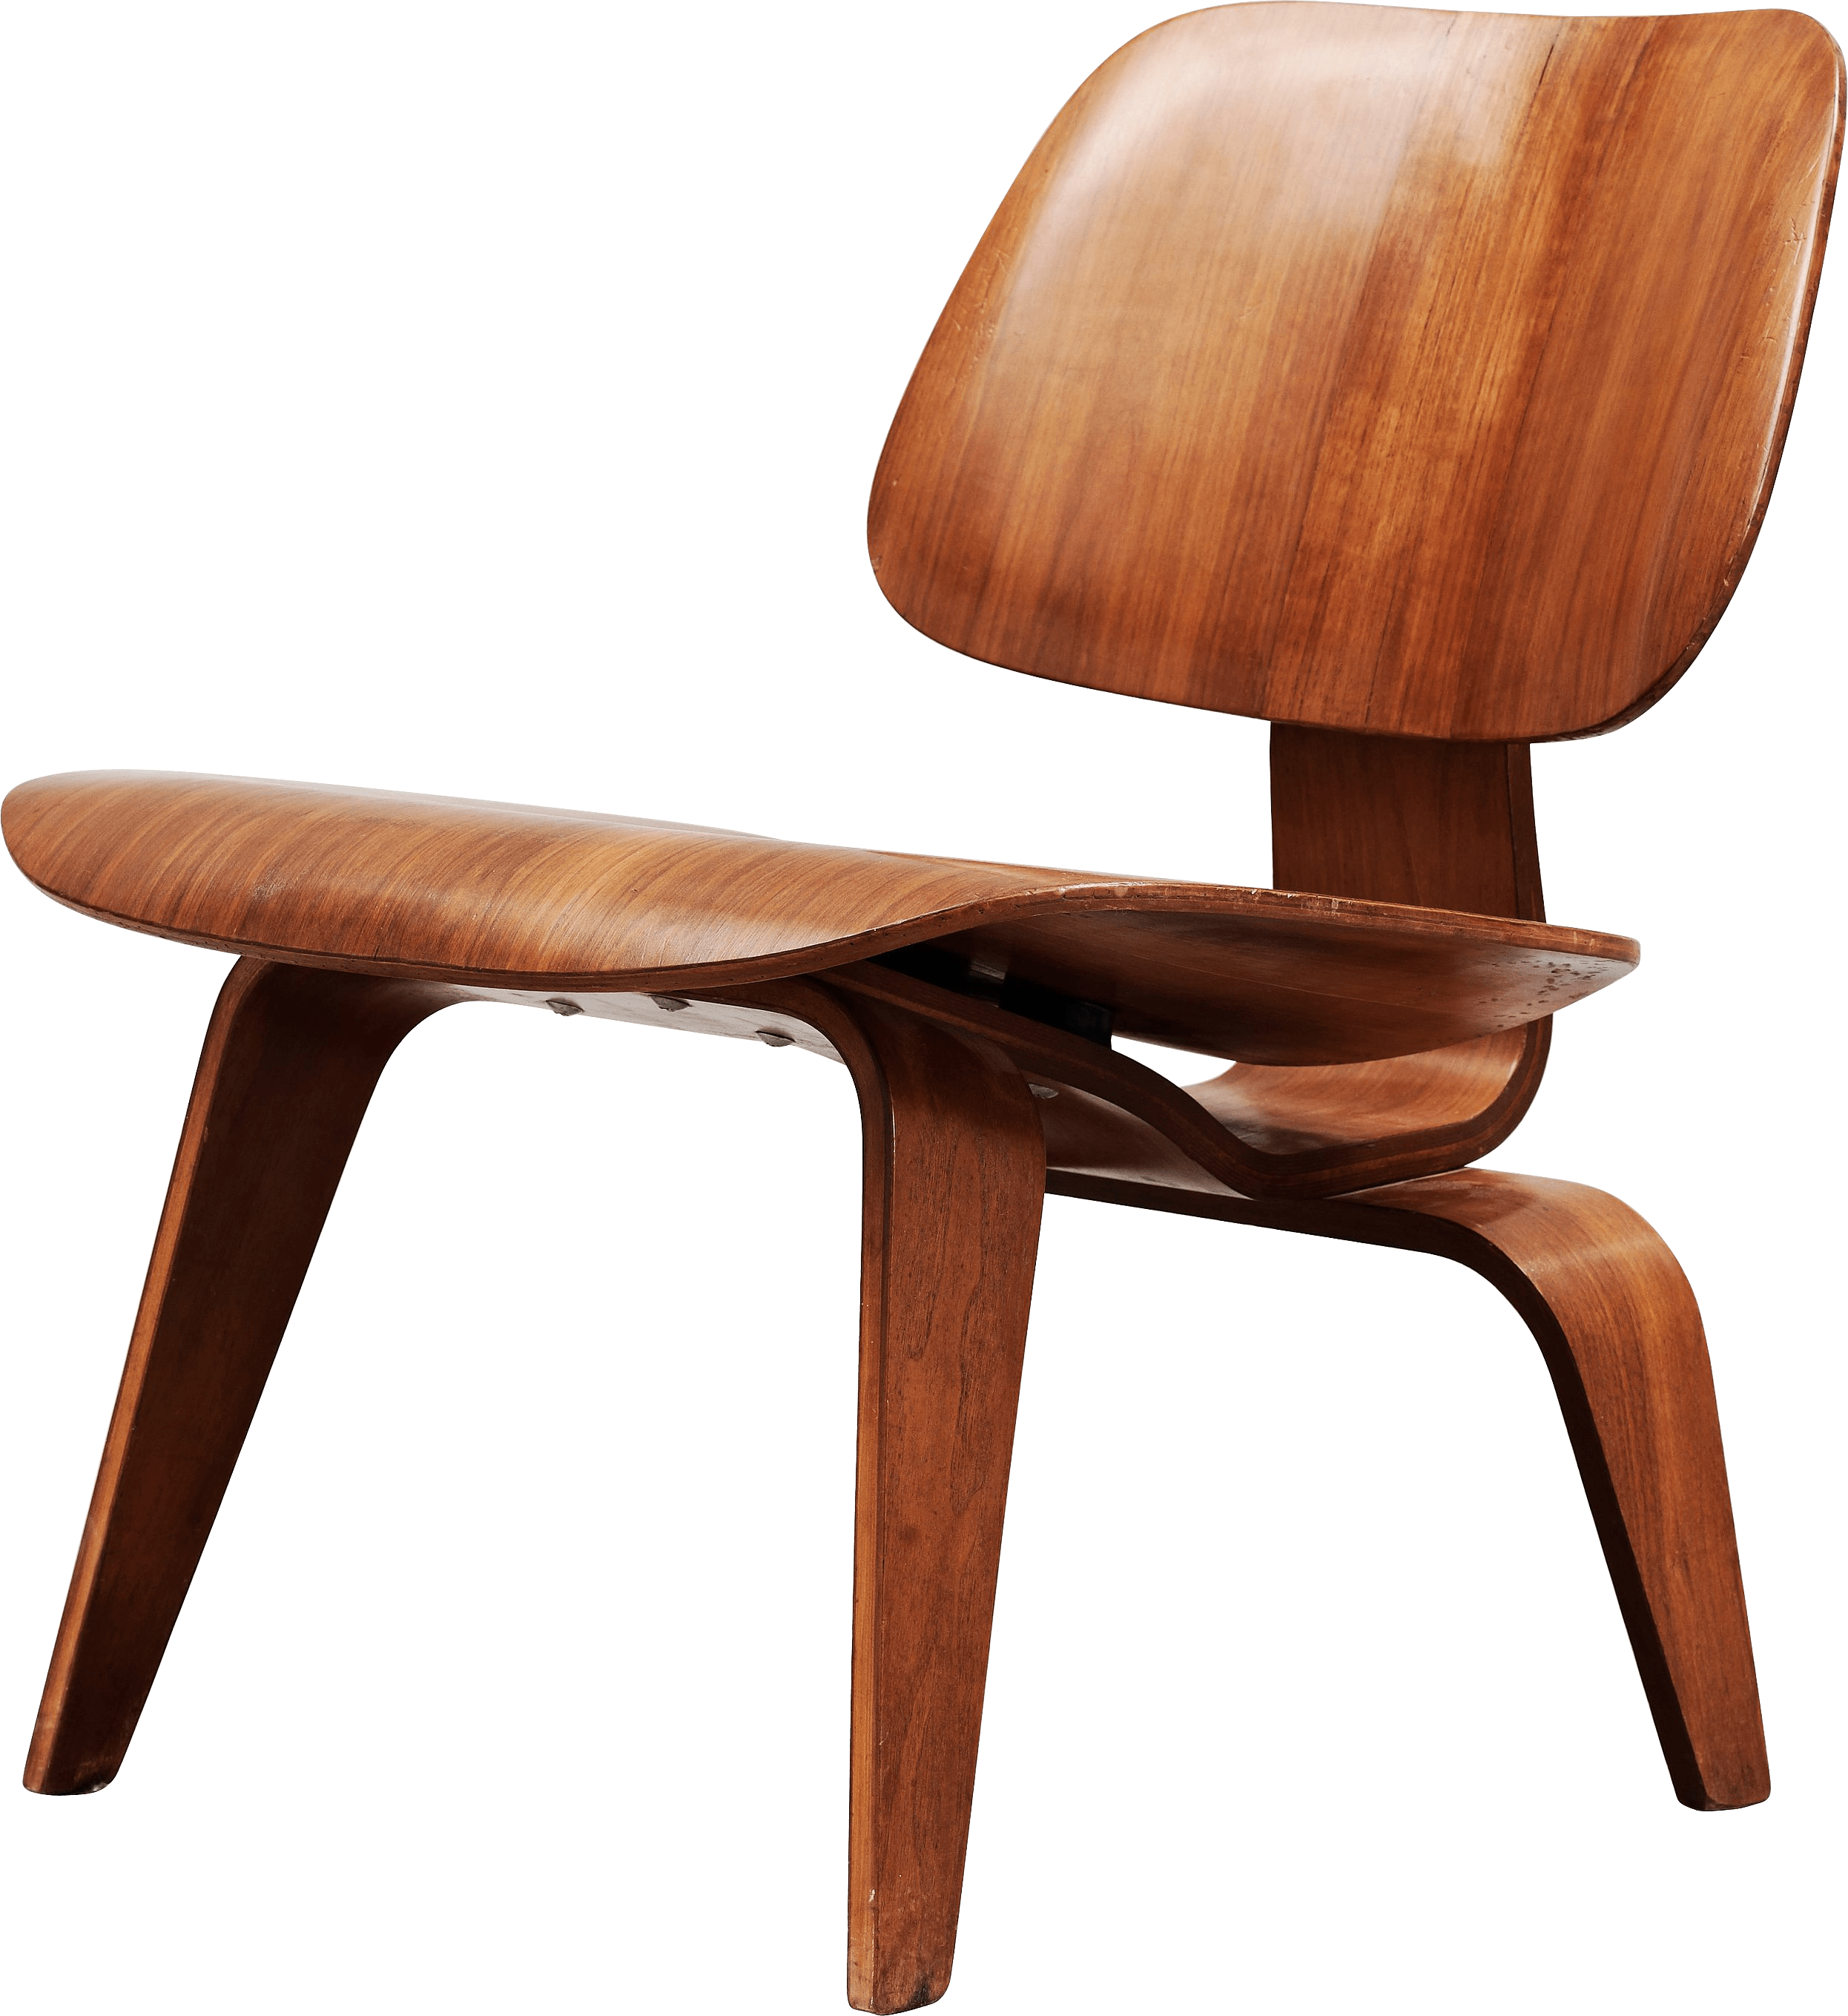 Furniture clipart wooden furniture. Stool chair transparent png